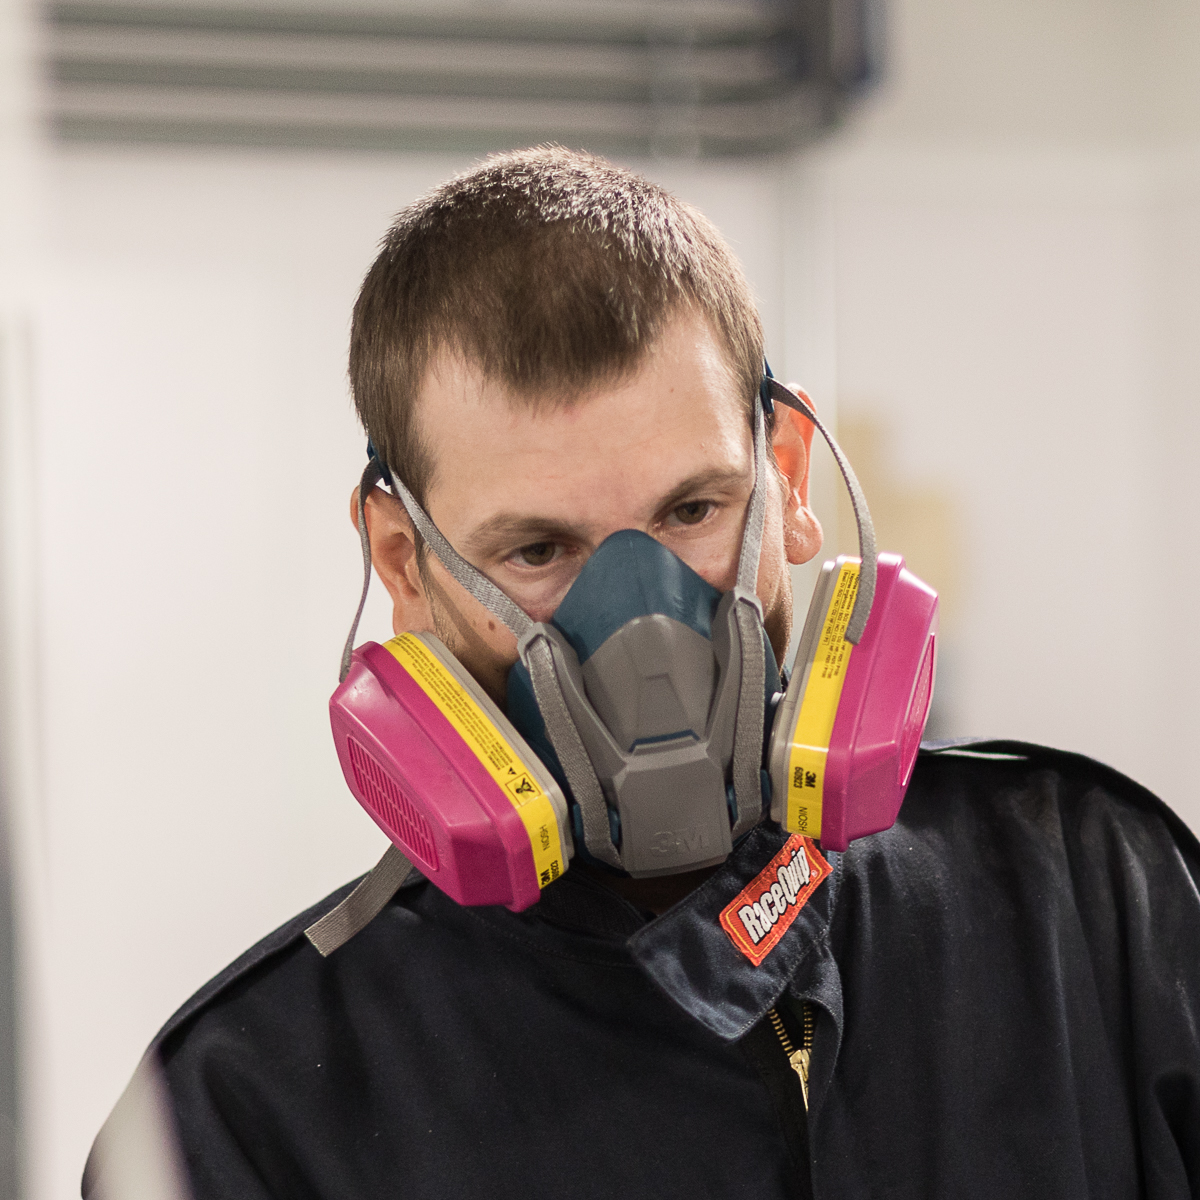 Image of production worker in gas mask